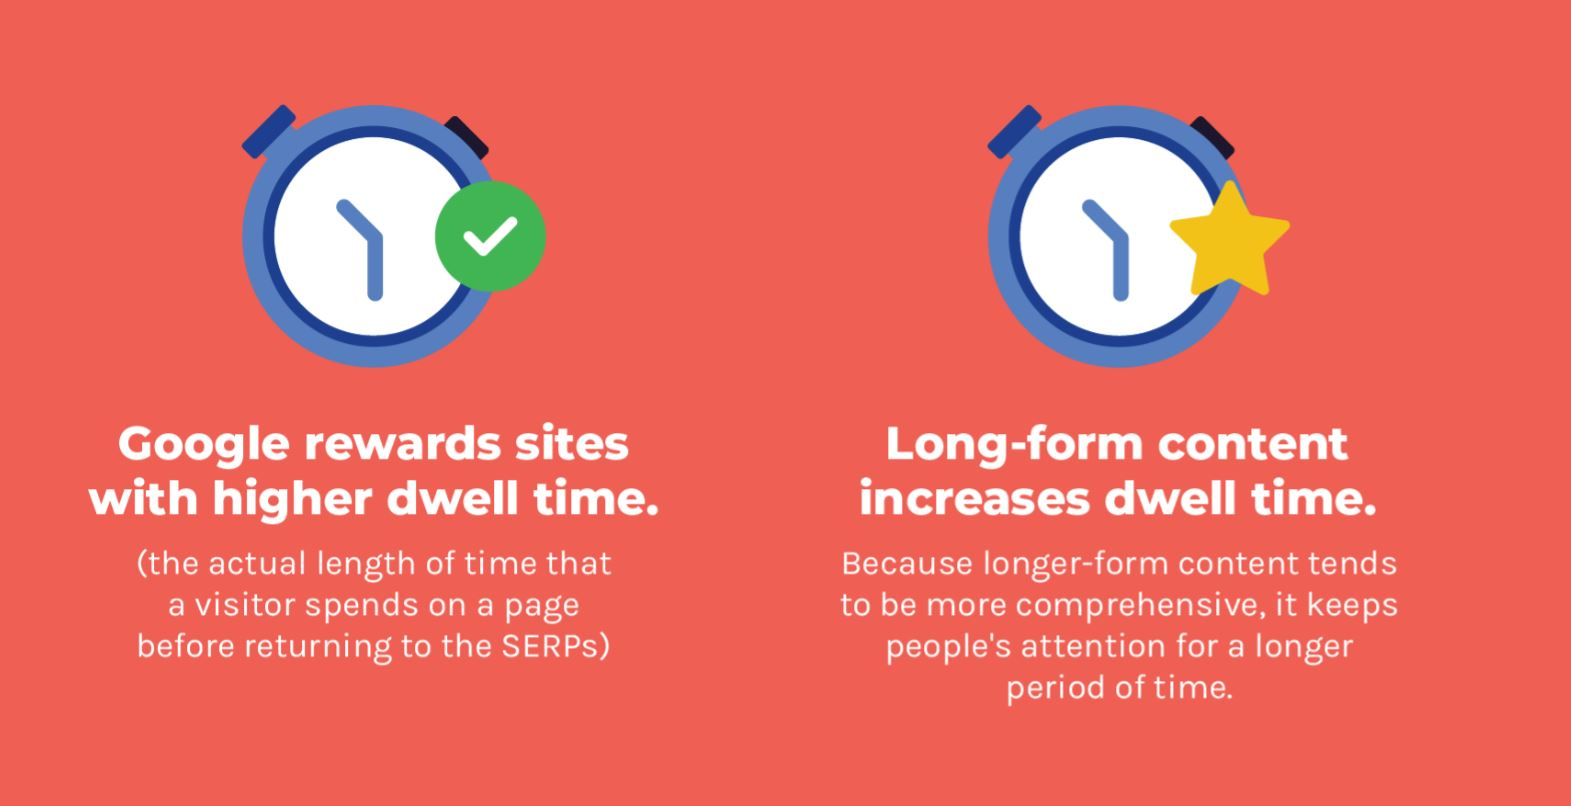 Dwell Time and Content Length